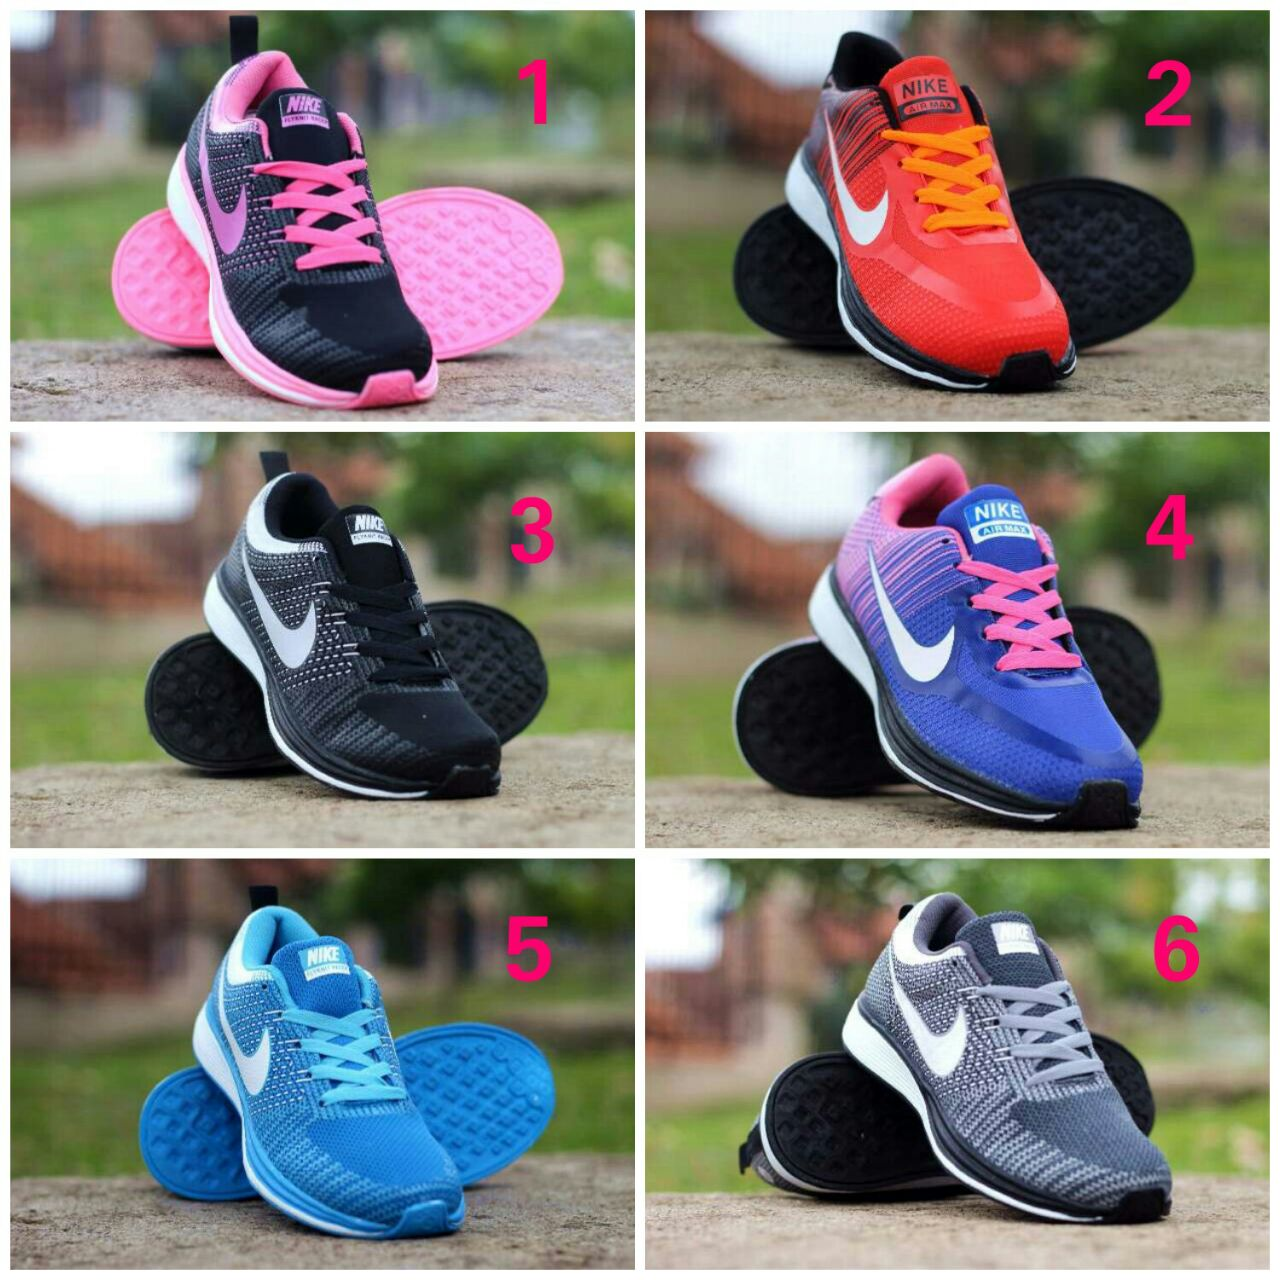 Sepatu Nike Flyknite Women Ukuran 36 40 Elevenia Carvil Canvas Ladies Helena 01 Black Gold Hitam 39